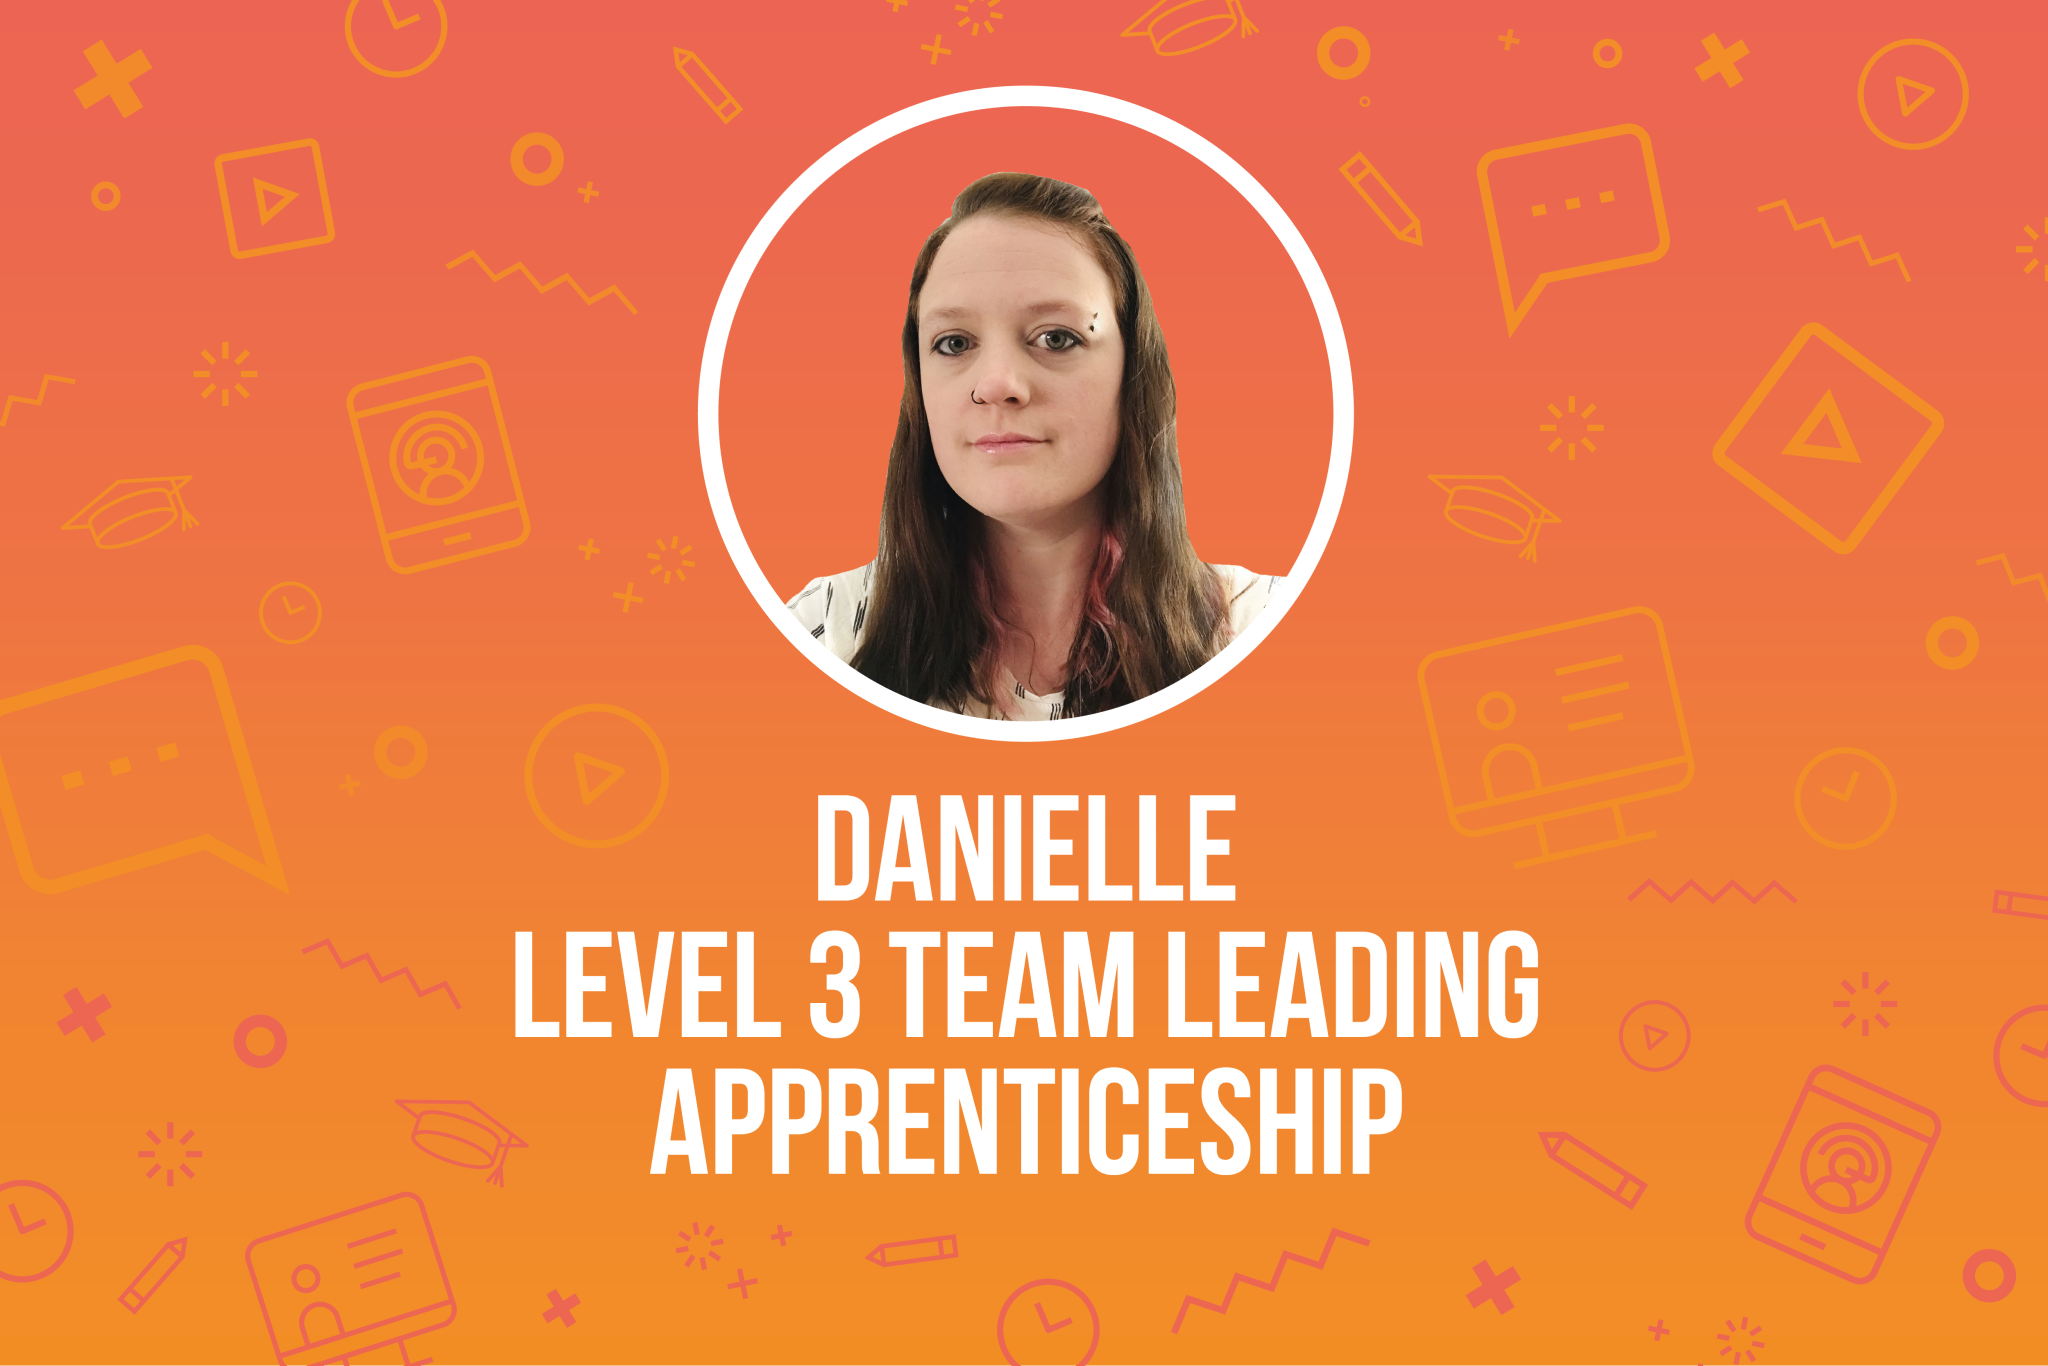 Apprenticeship Student Danielle Achieves Distinction During Covid-19